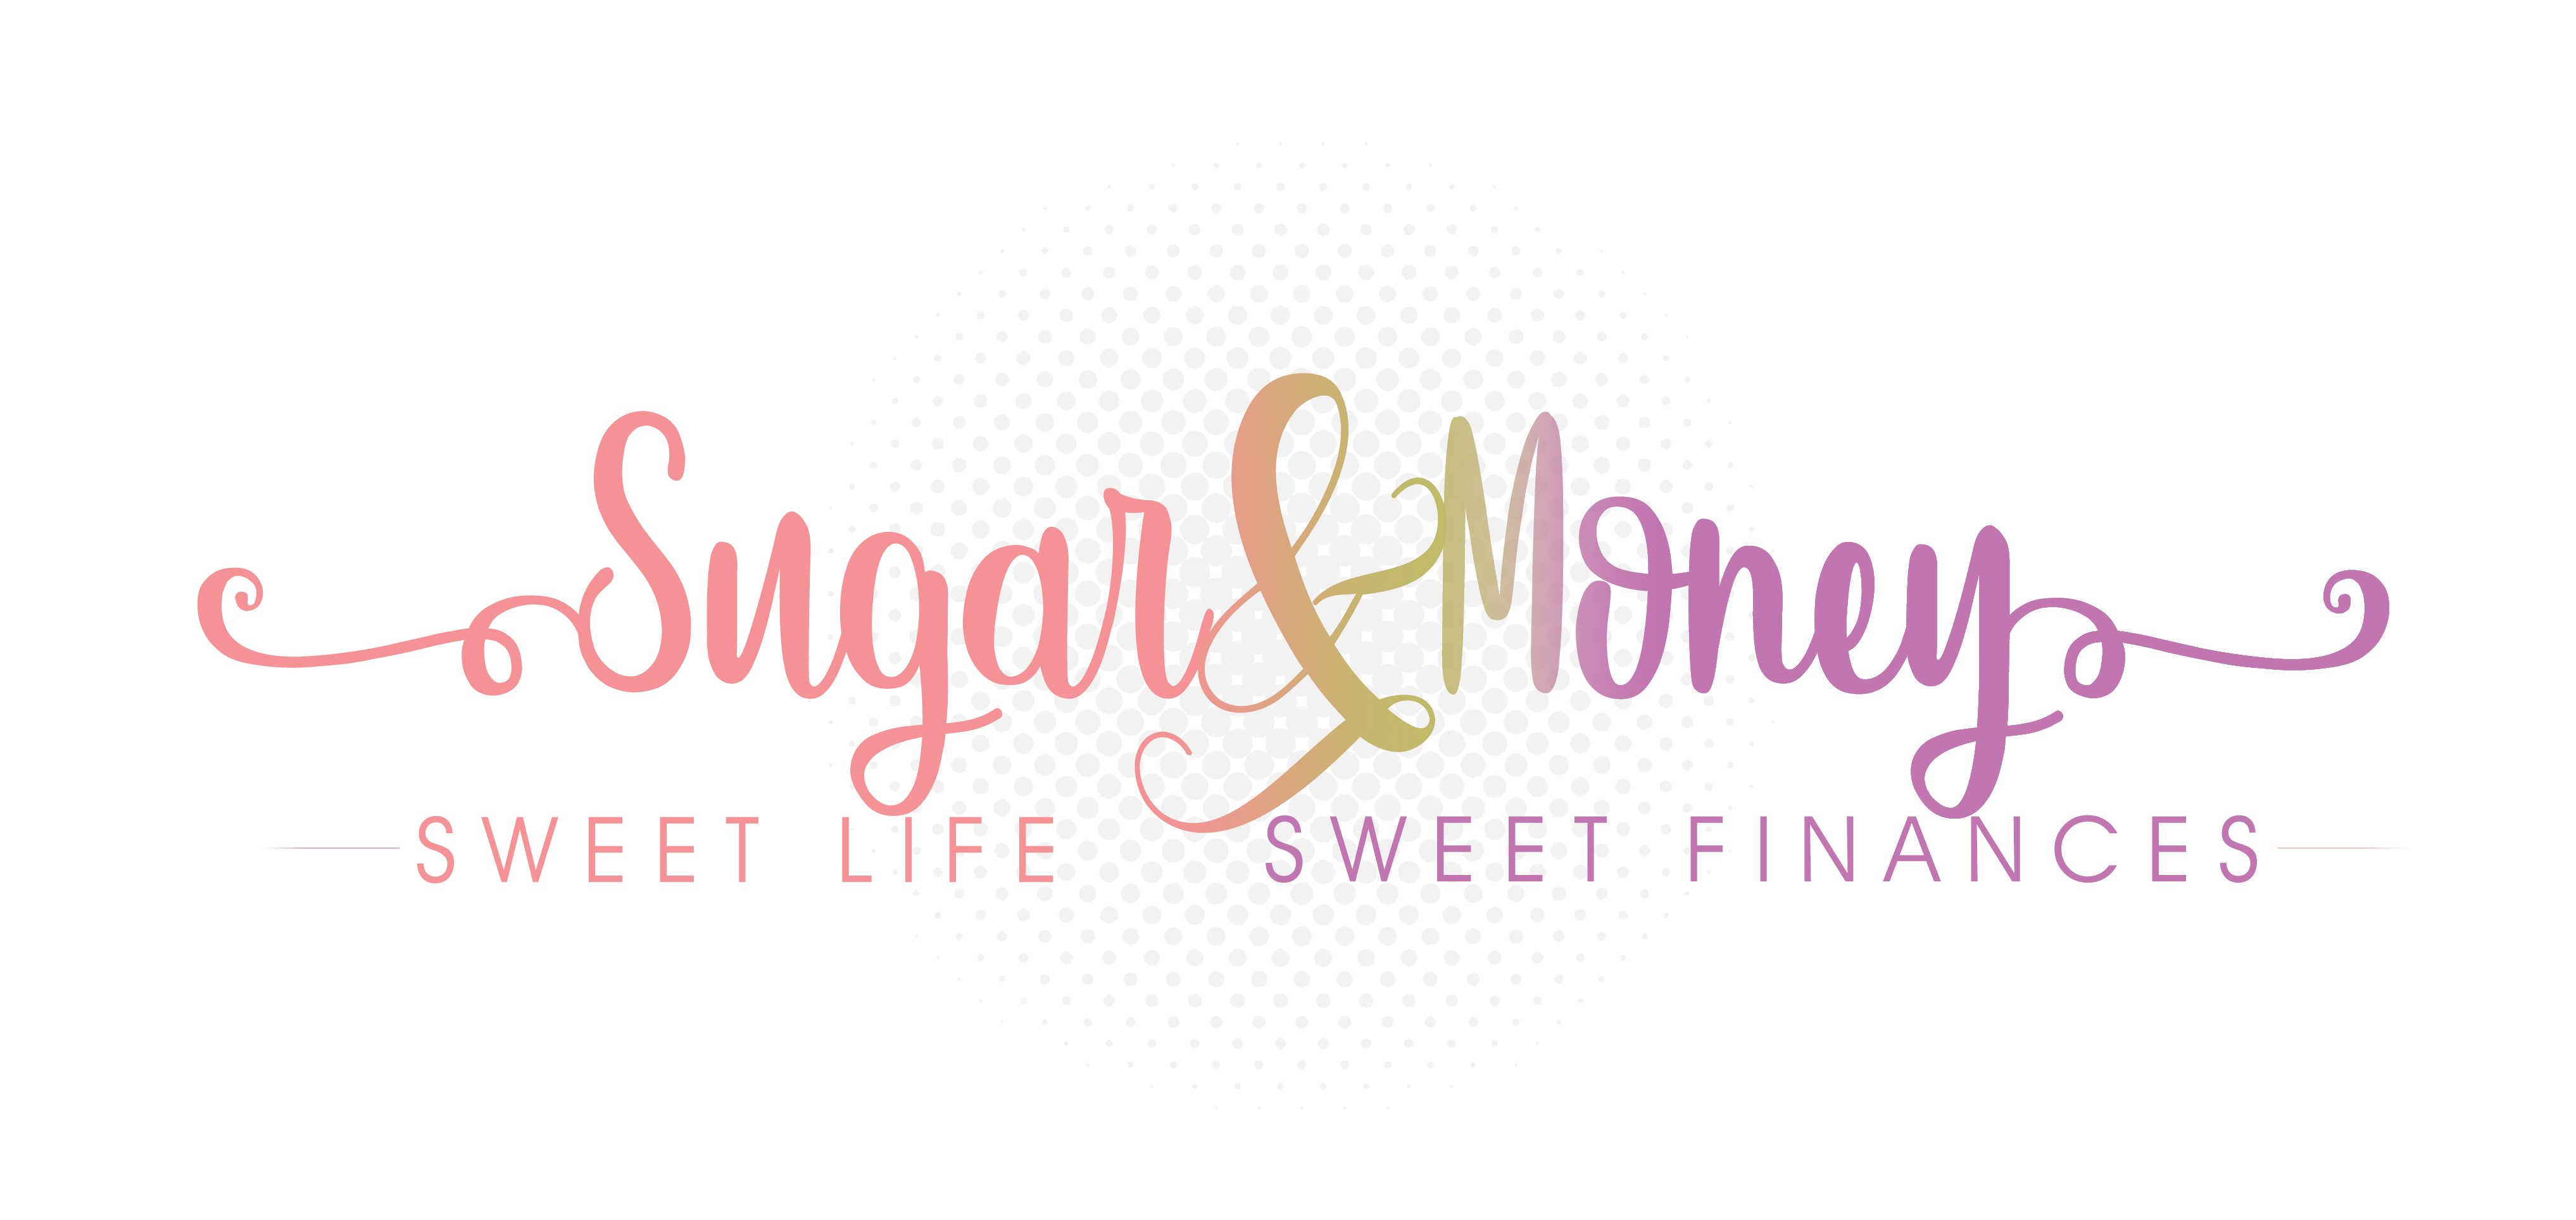 Sugar and Money